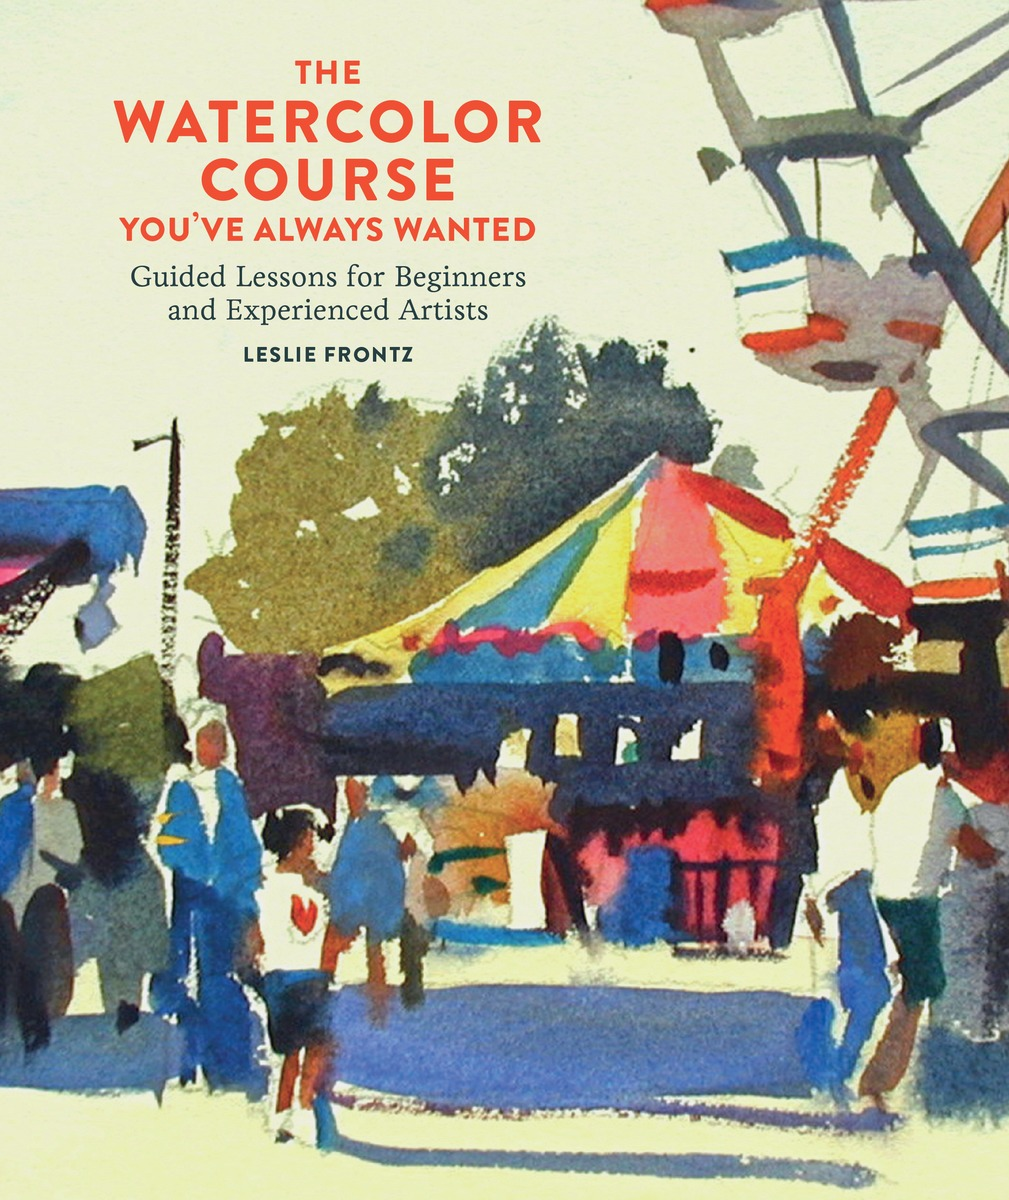 The Watercolor Course You've Always Wanted: Guided Lessons for Beginners and Experienced Artists course enrollment decisions